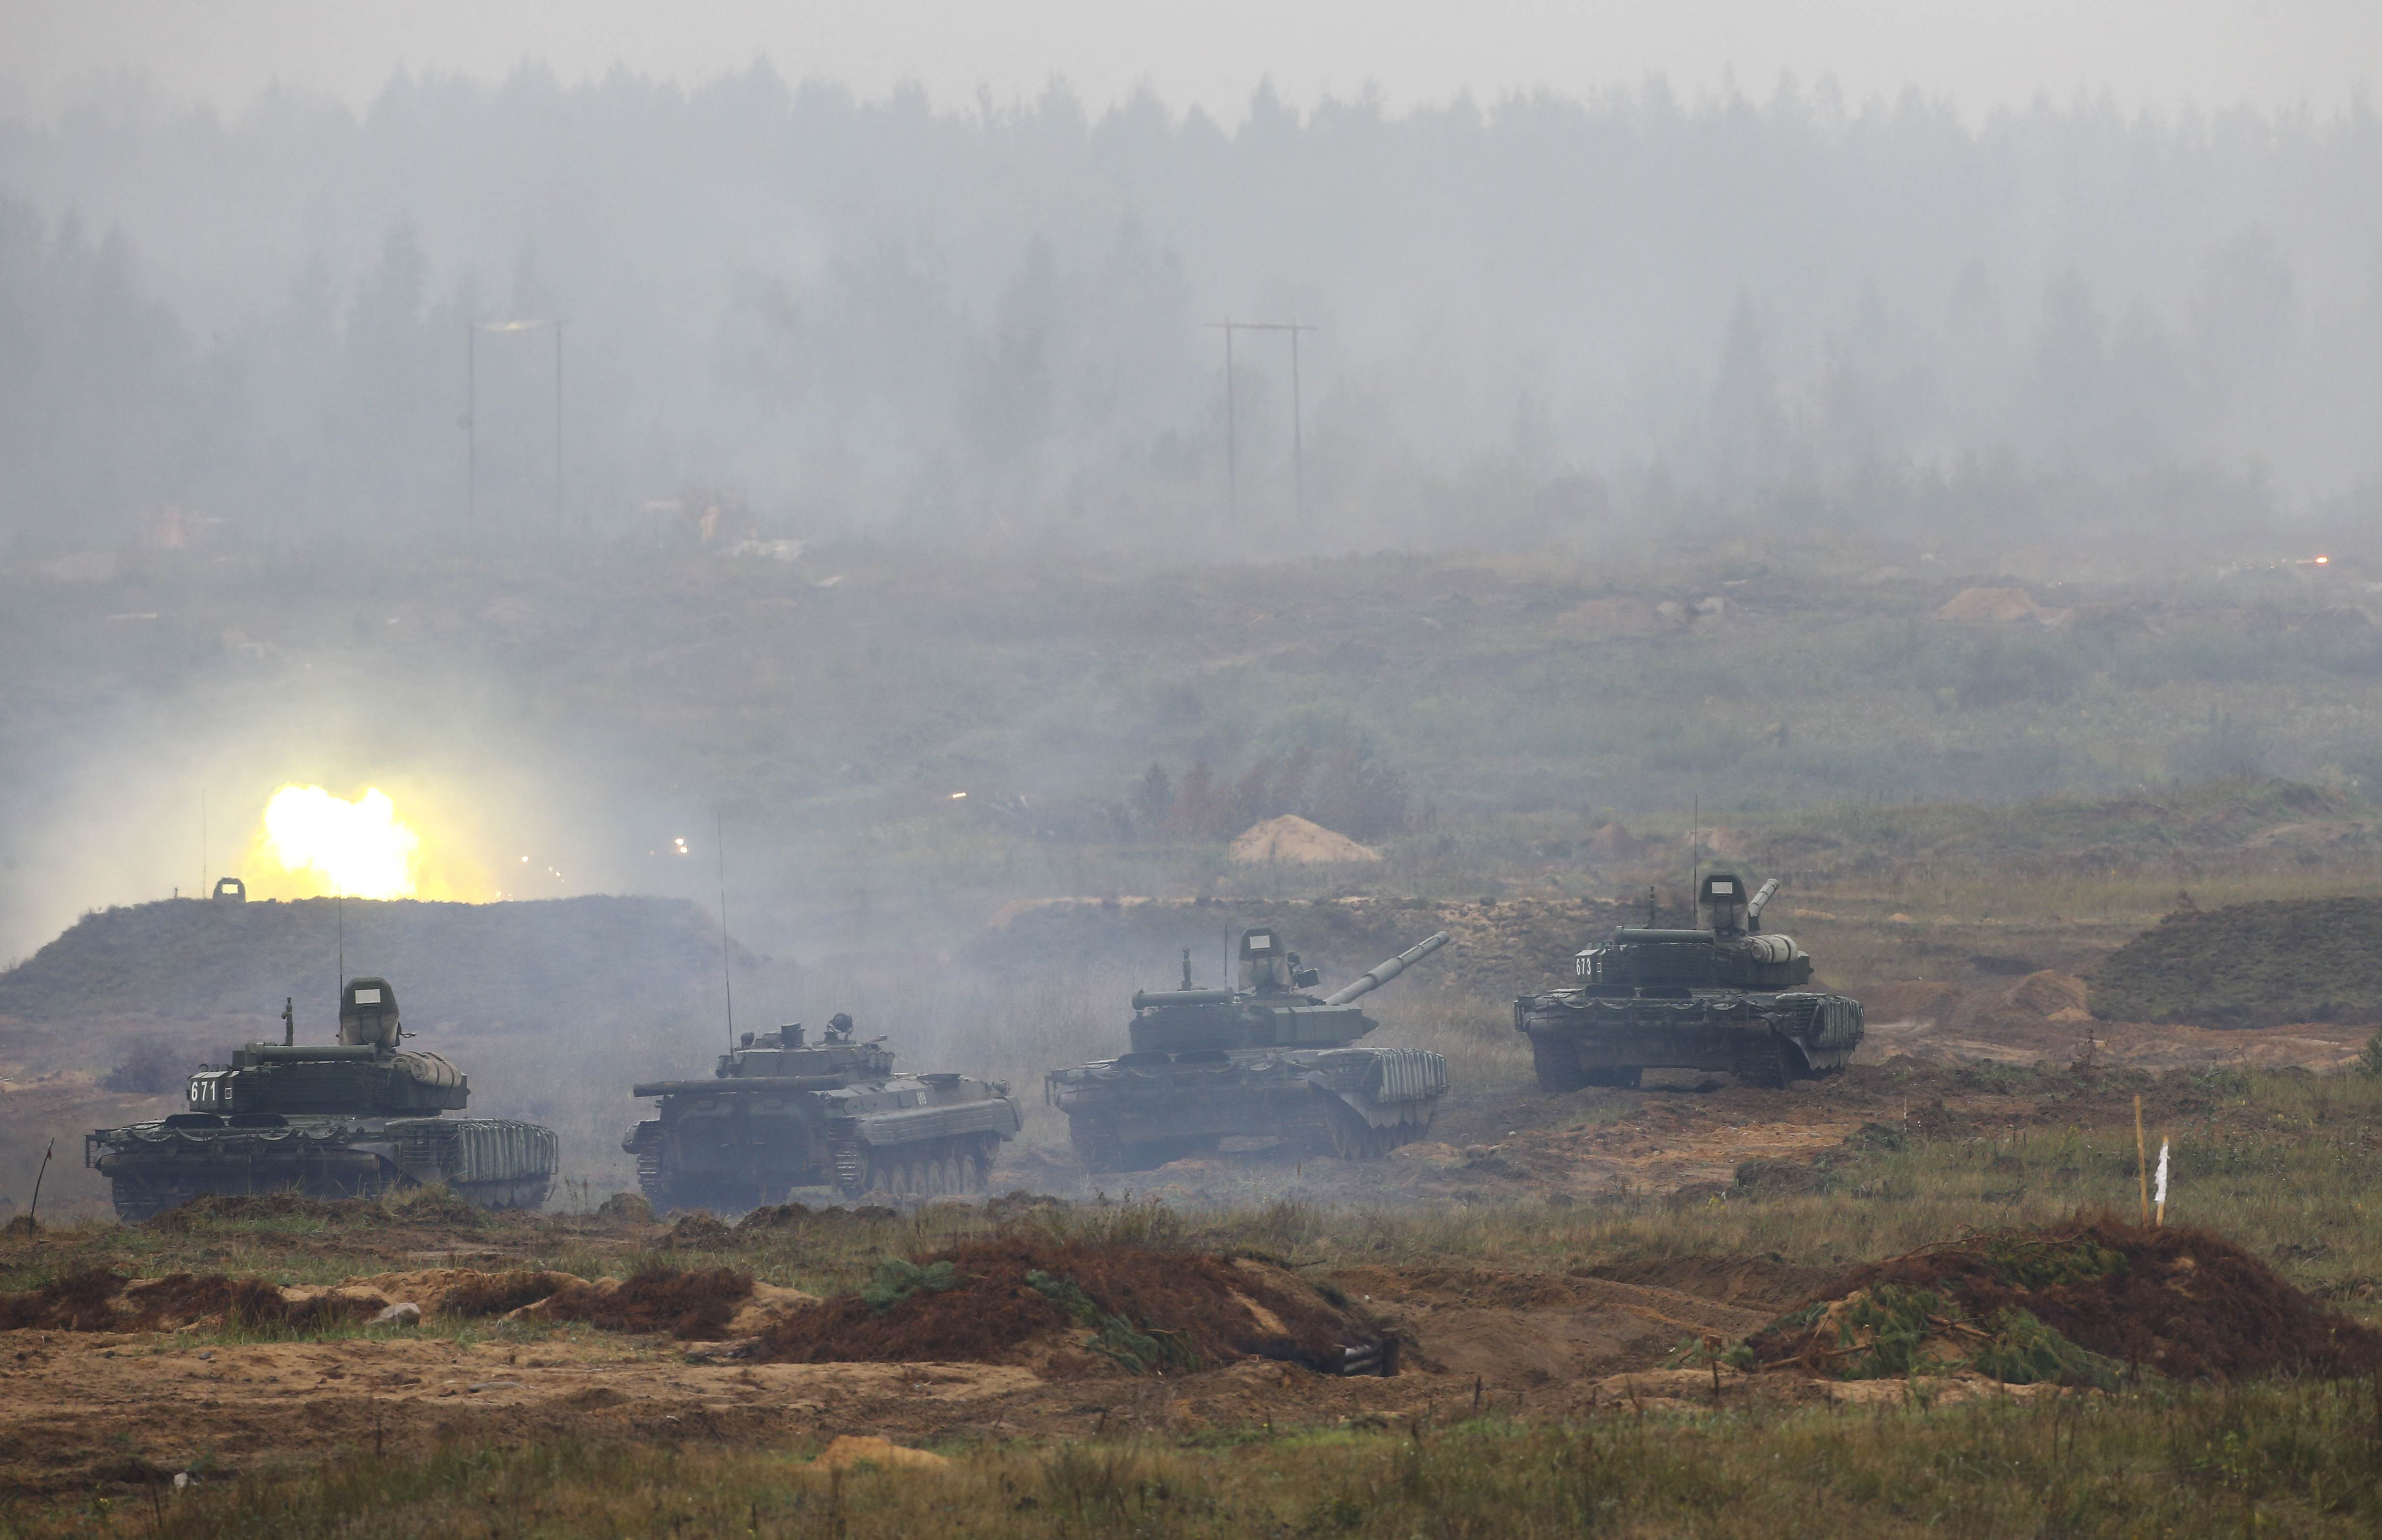 Tanks and an armoured vehicle take part in the Zapad 2017 war games at a range near the town of Borisov, Belarus September 20, 2017. REUTERS/Vasily Fedosenko